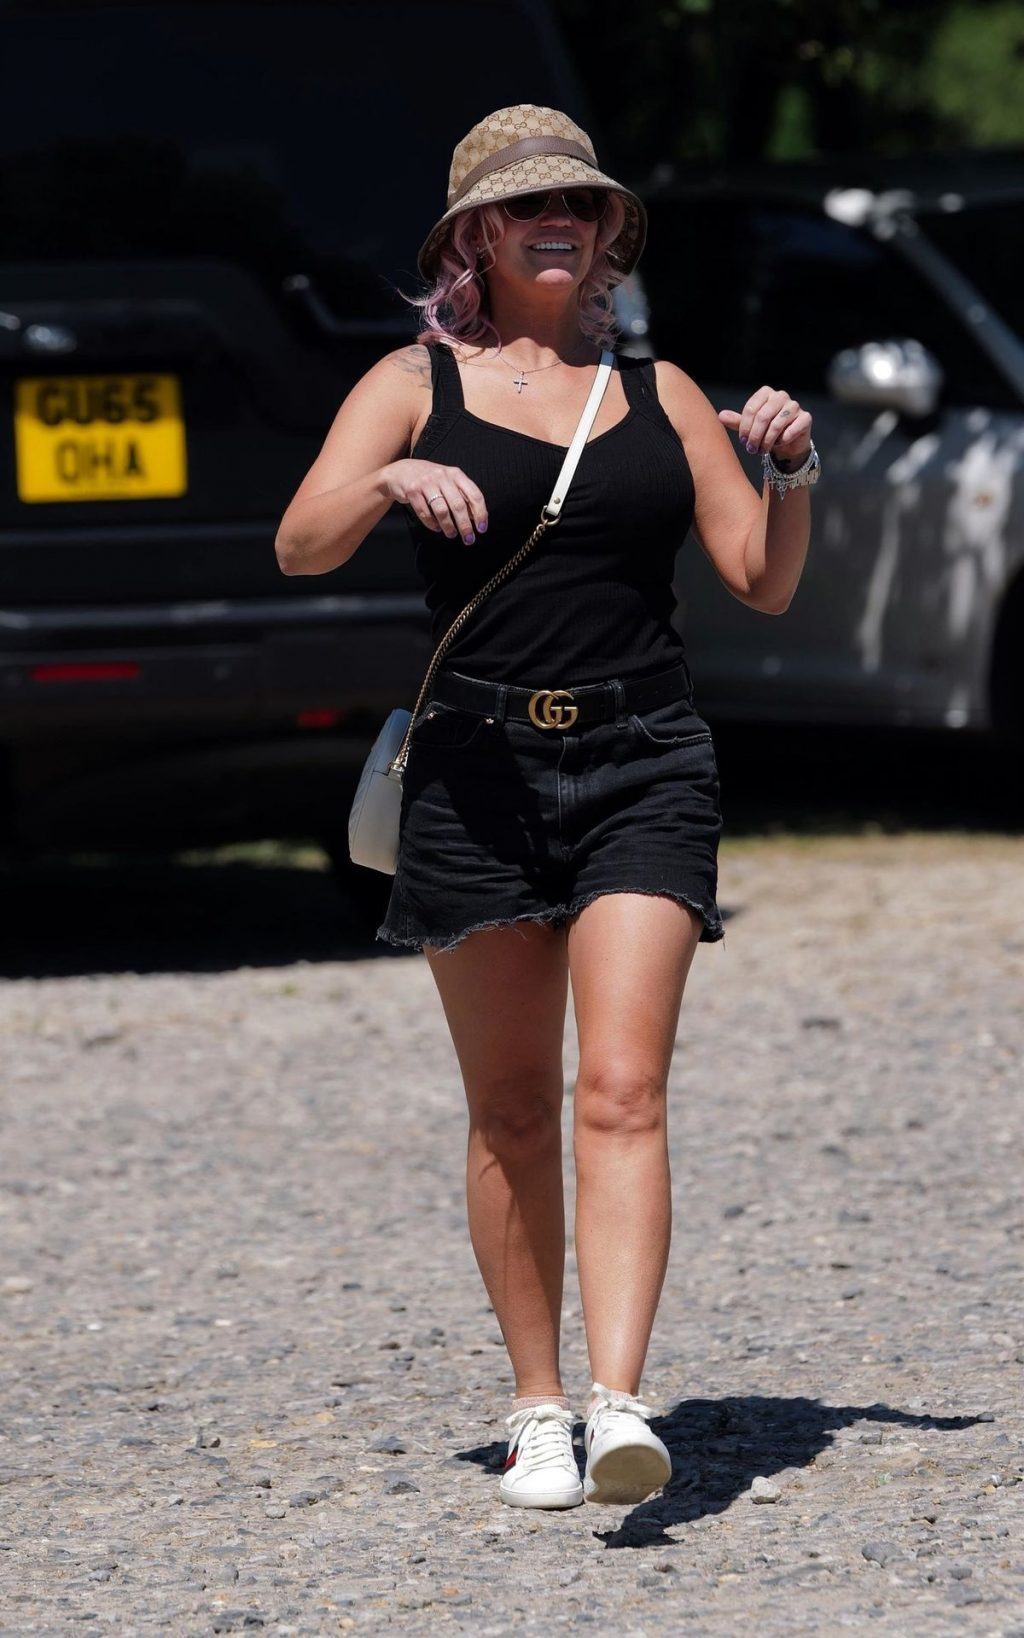 Kerry Katona Shows Off Her Pink Hair And Looks in Great Spirits in London (72 Photos)